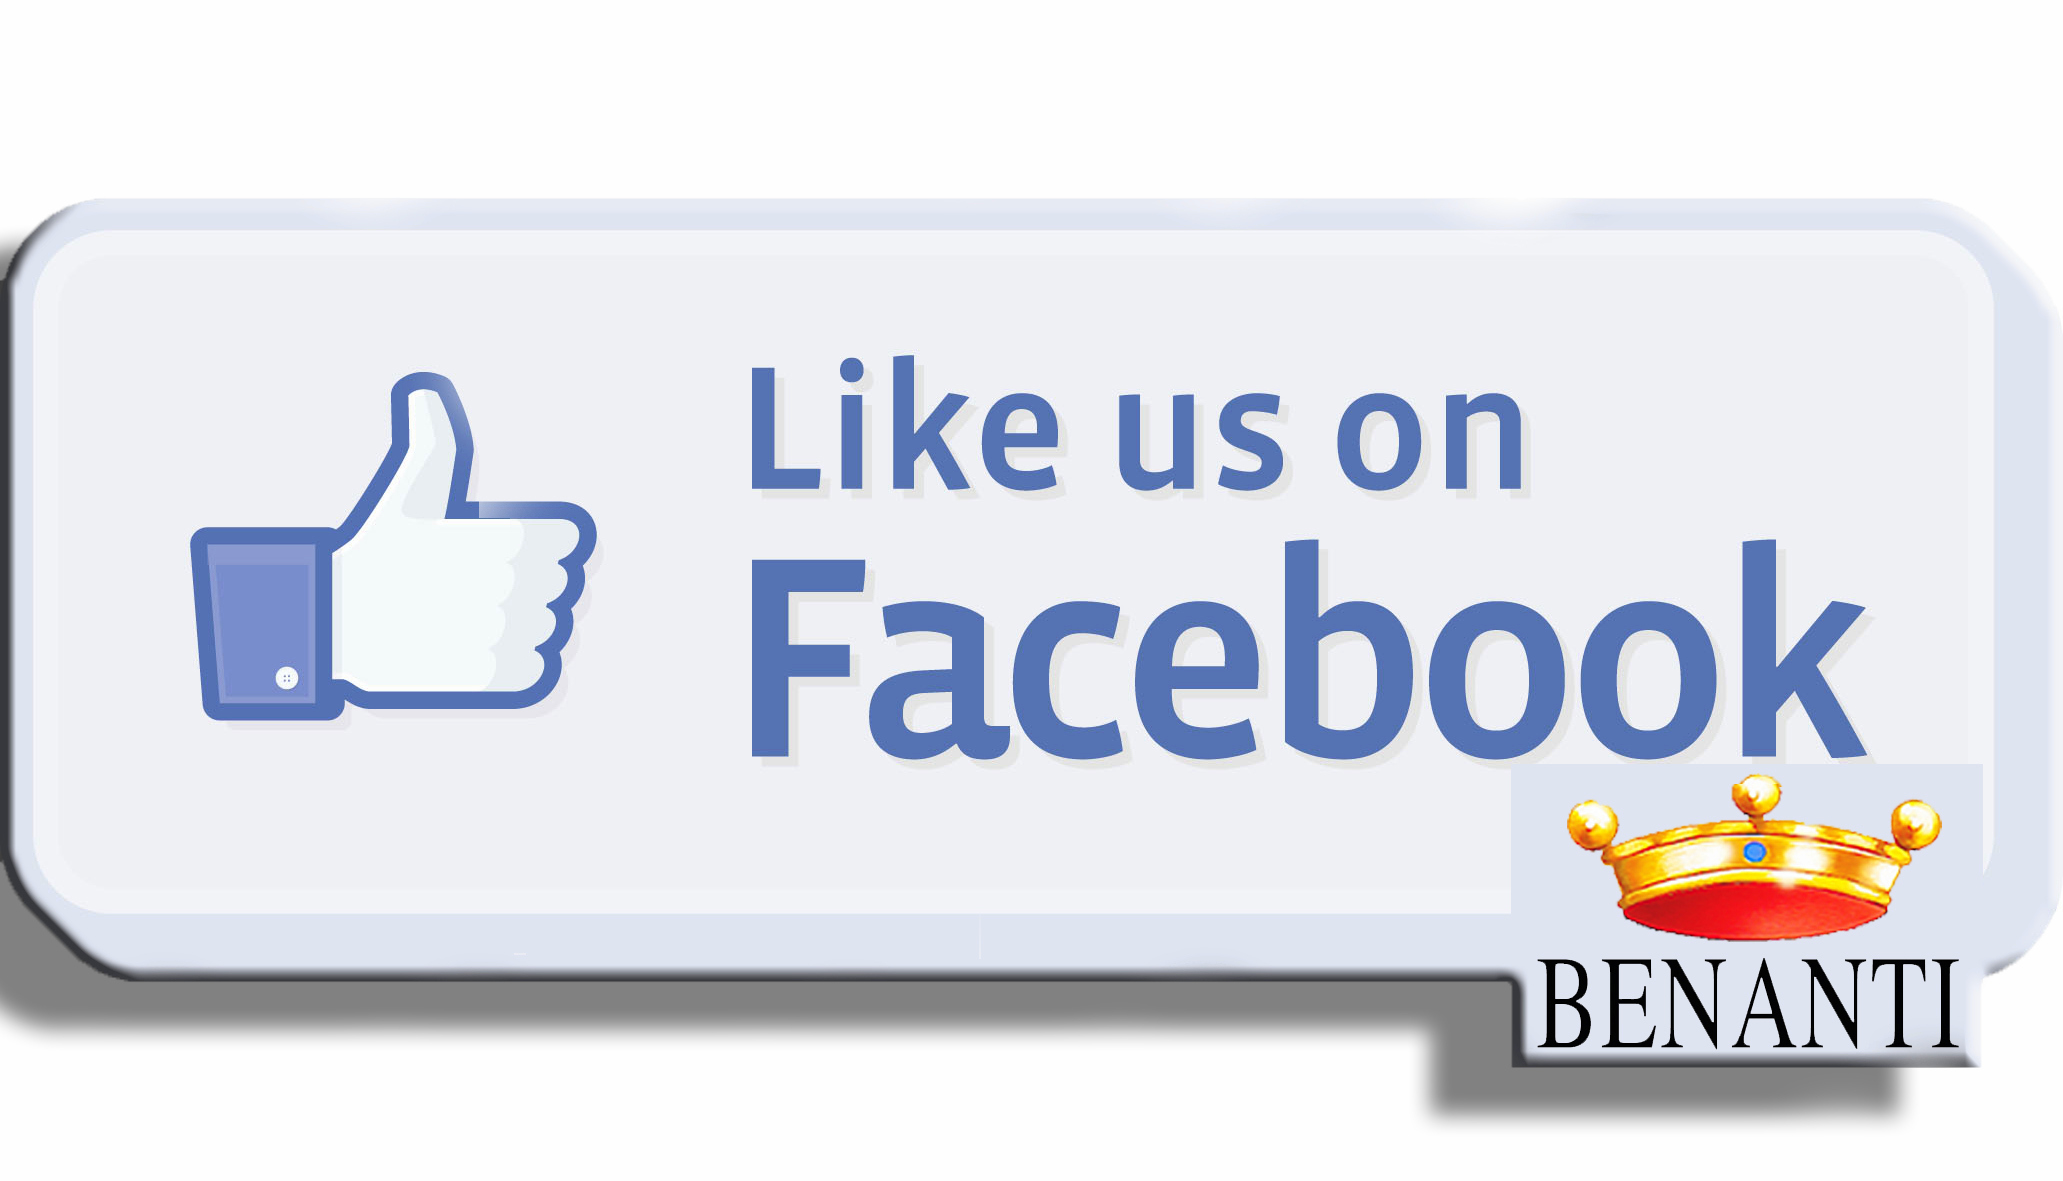 Like Vinicola Benanti on Facebook